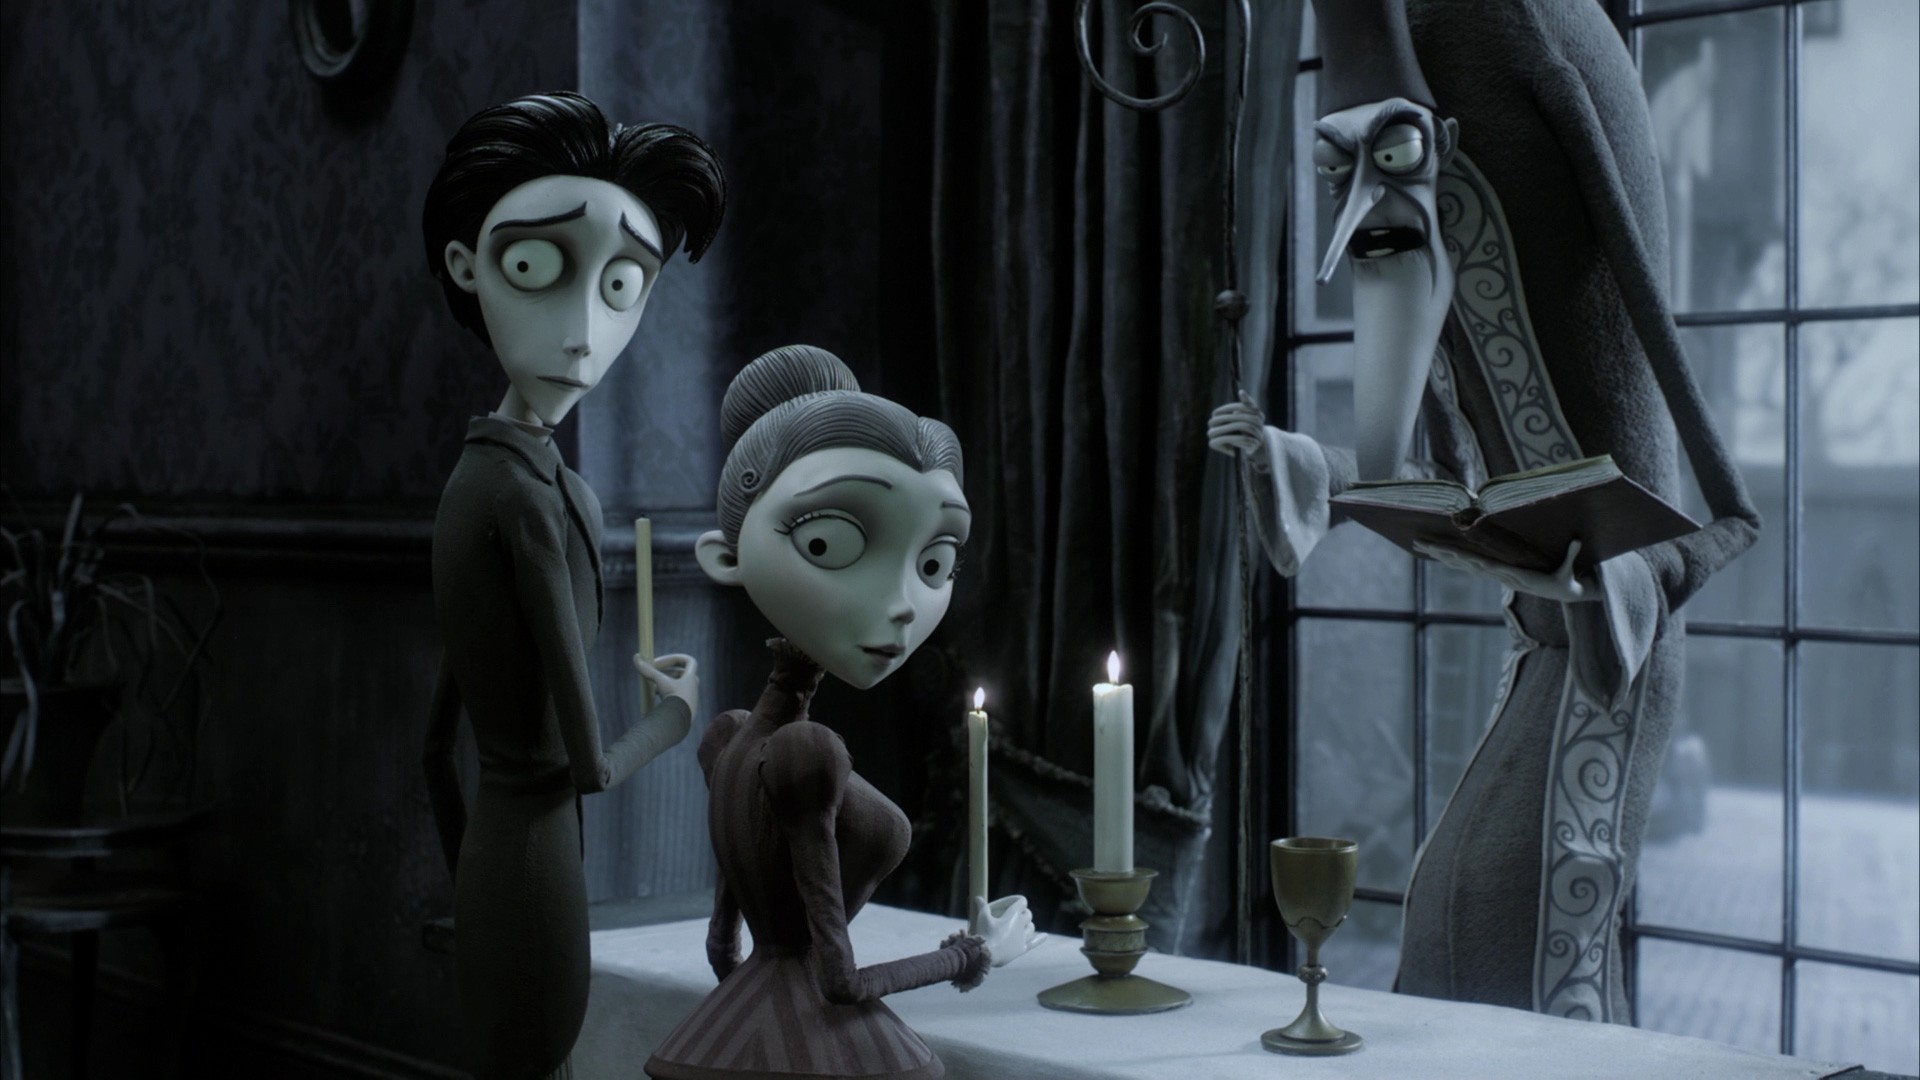 Victor Van Dort (voiced by Johnny Depp) prepares to marry his regular human bride Victoria Everglot (voiced by Emily Watson) in Corpse Bride (2005)